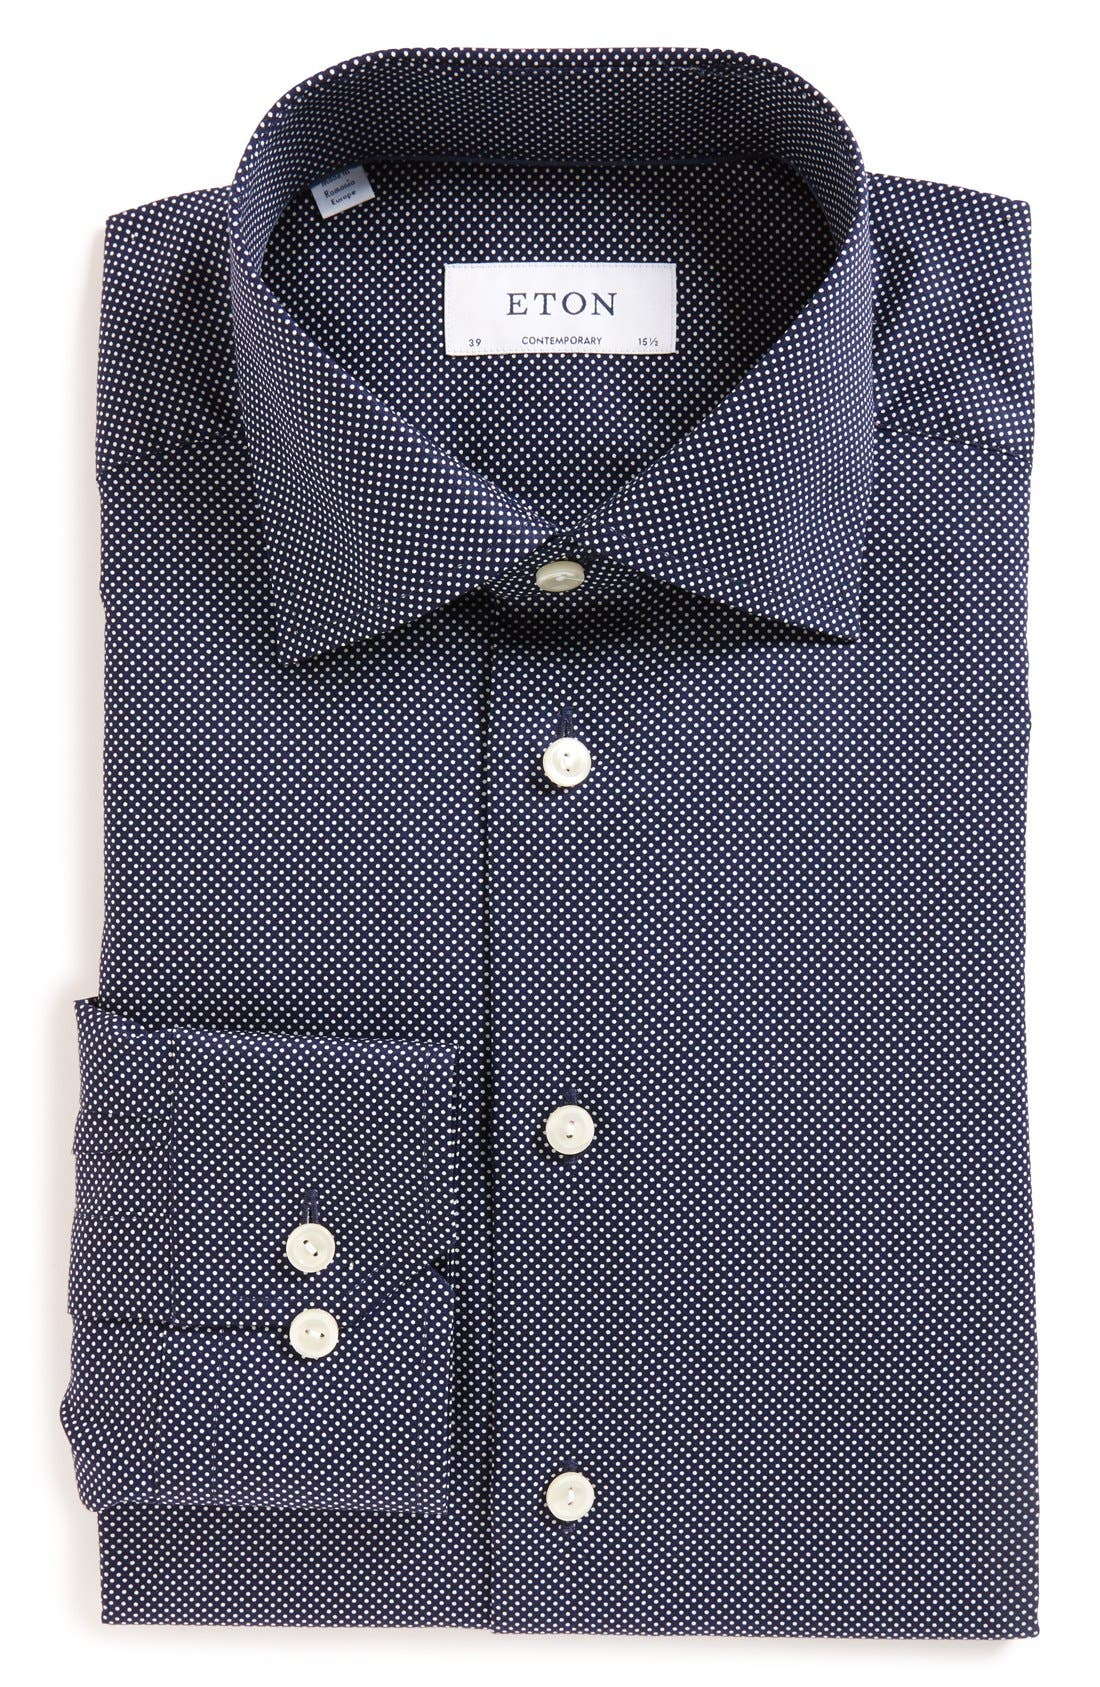 Alternate Image 1 Selected - Eton Contemporary Fit Dot Dress Shirt